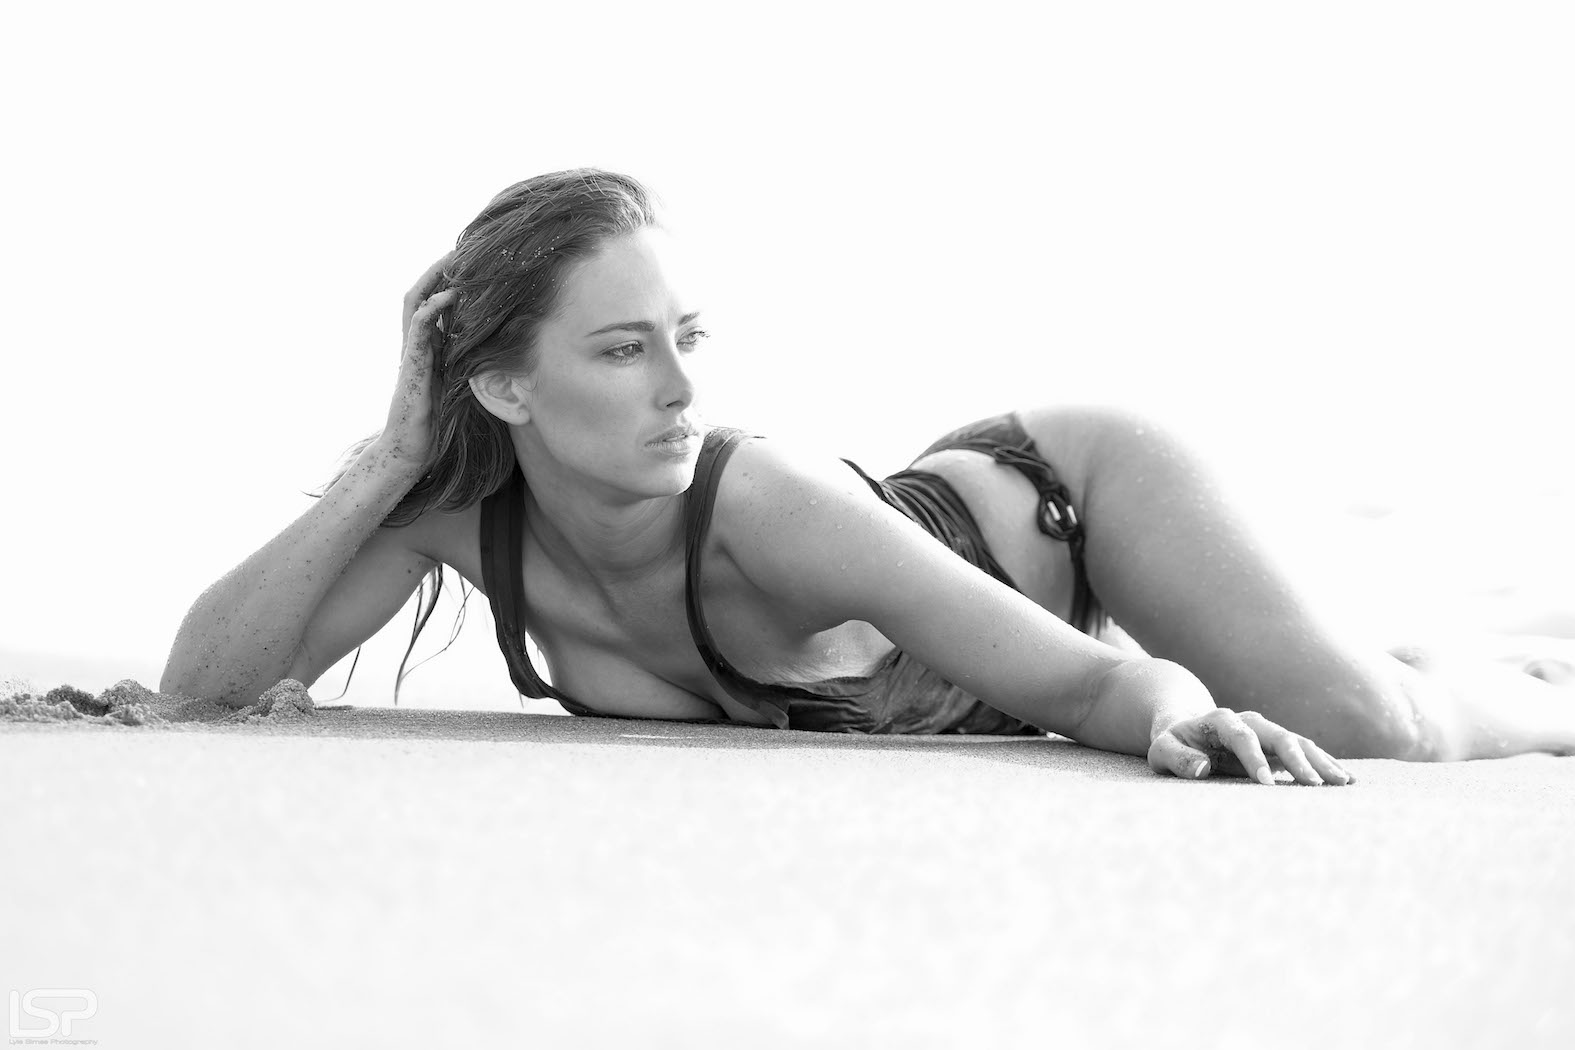 Our South African Babes feature with Melissa Leith